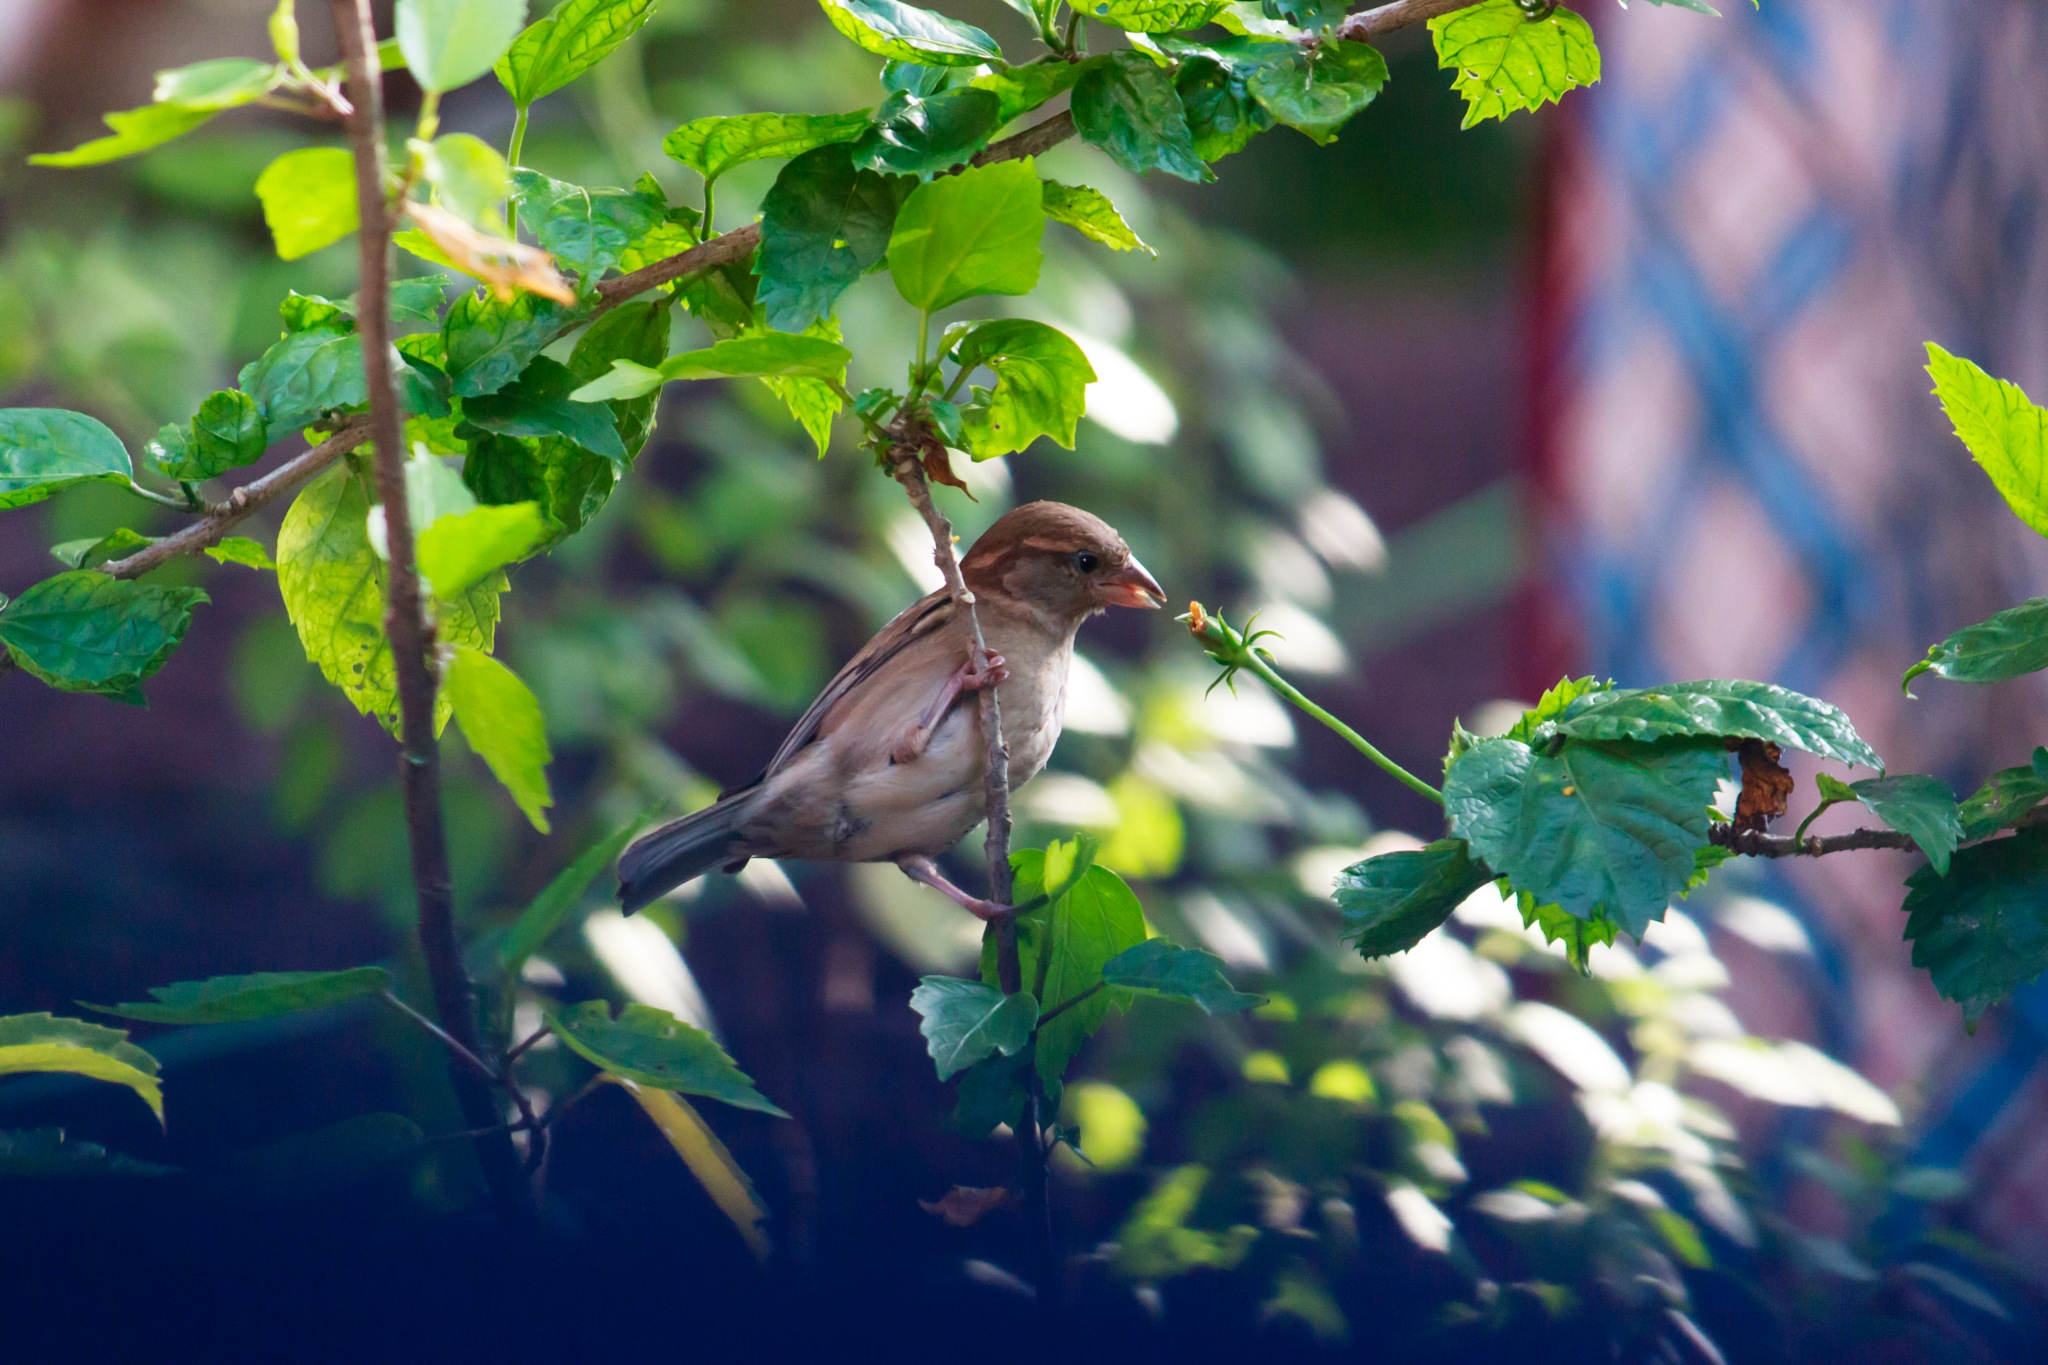 Indian House sparrow by Shilpa M B